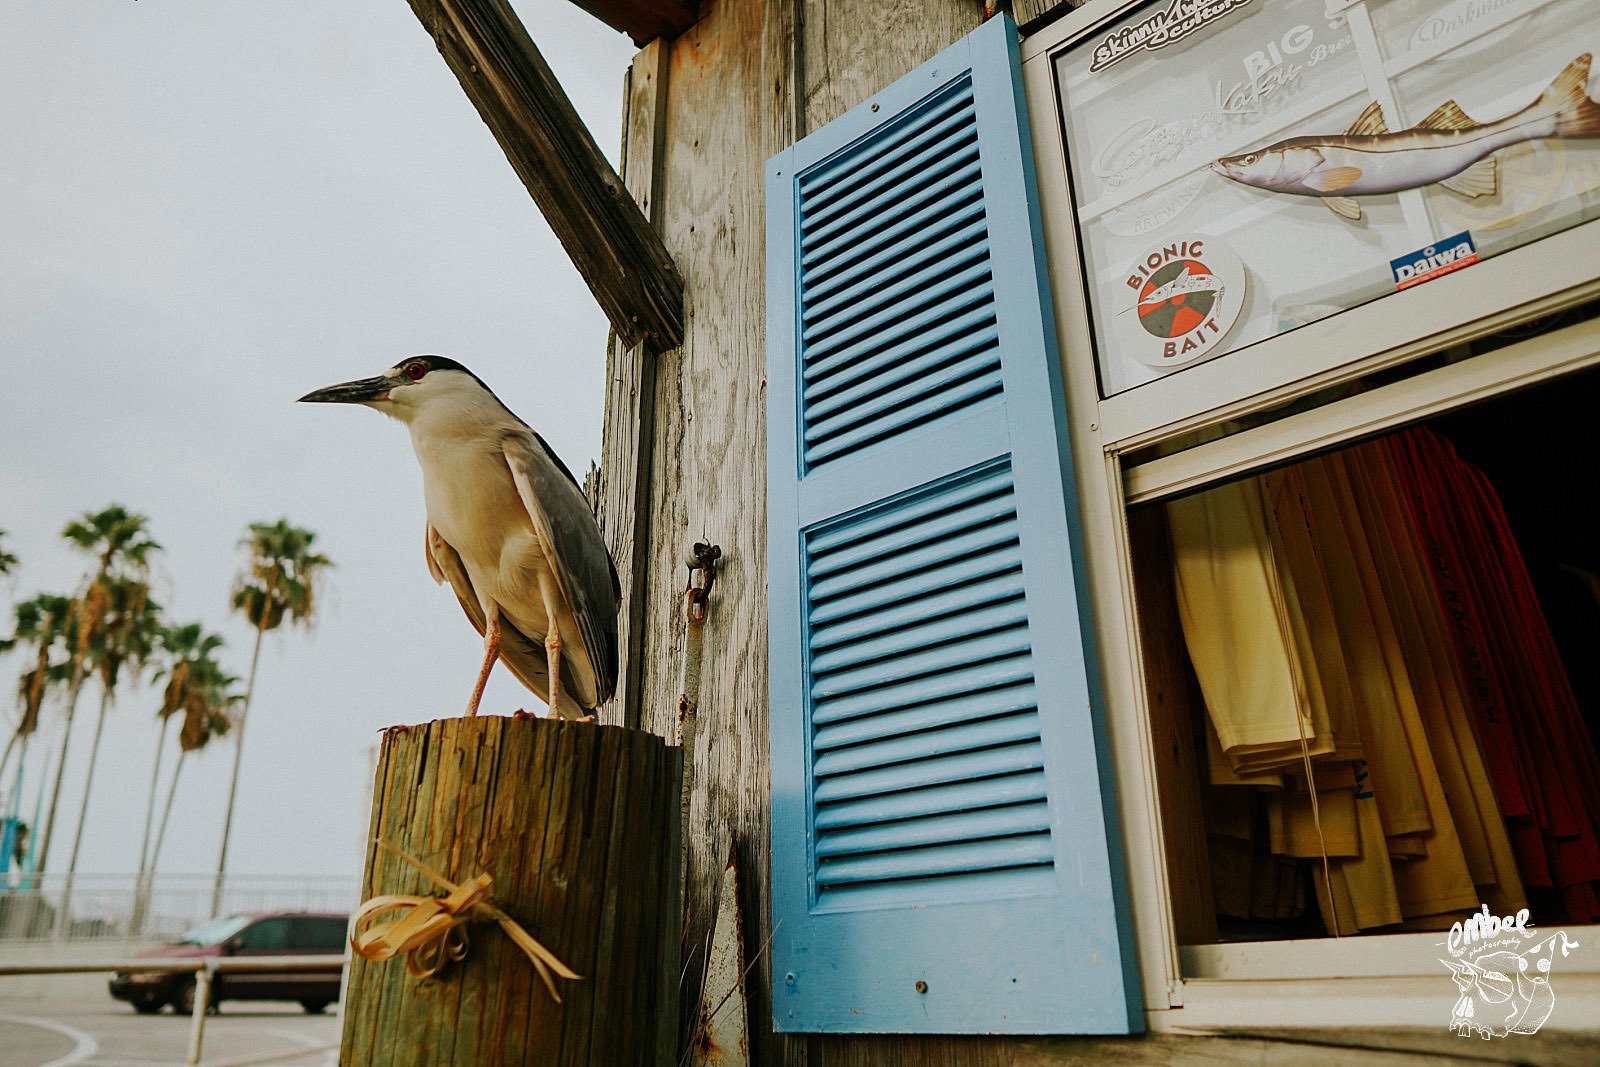 chuck the night heron at the bait house in clearwater